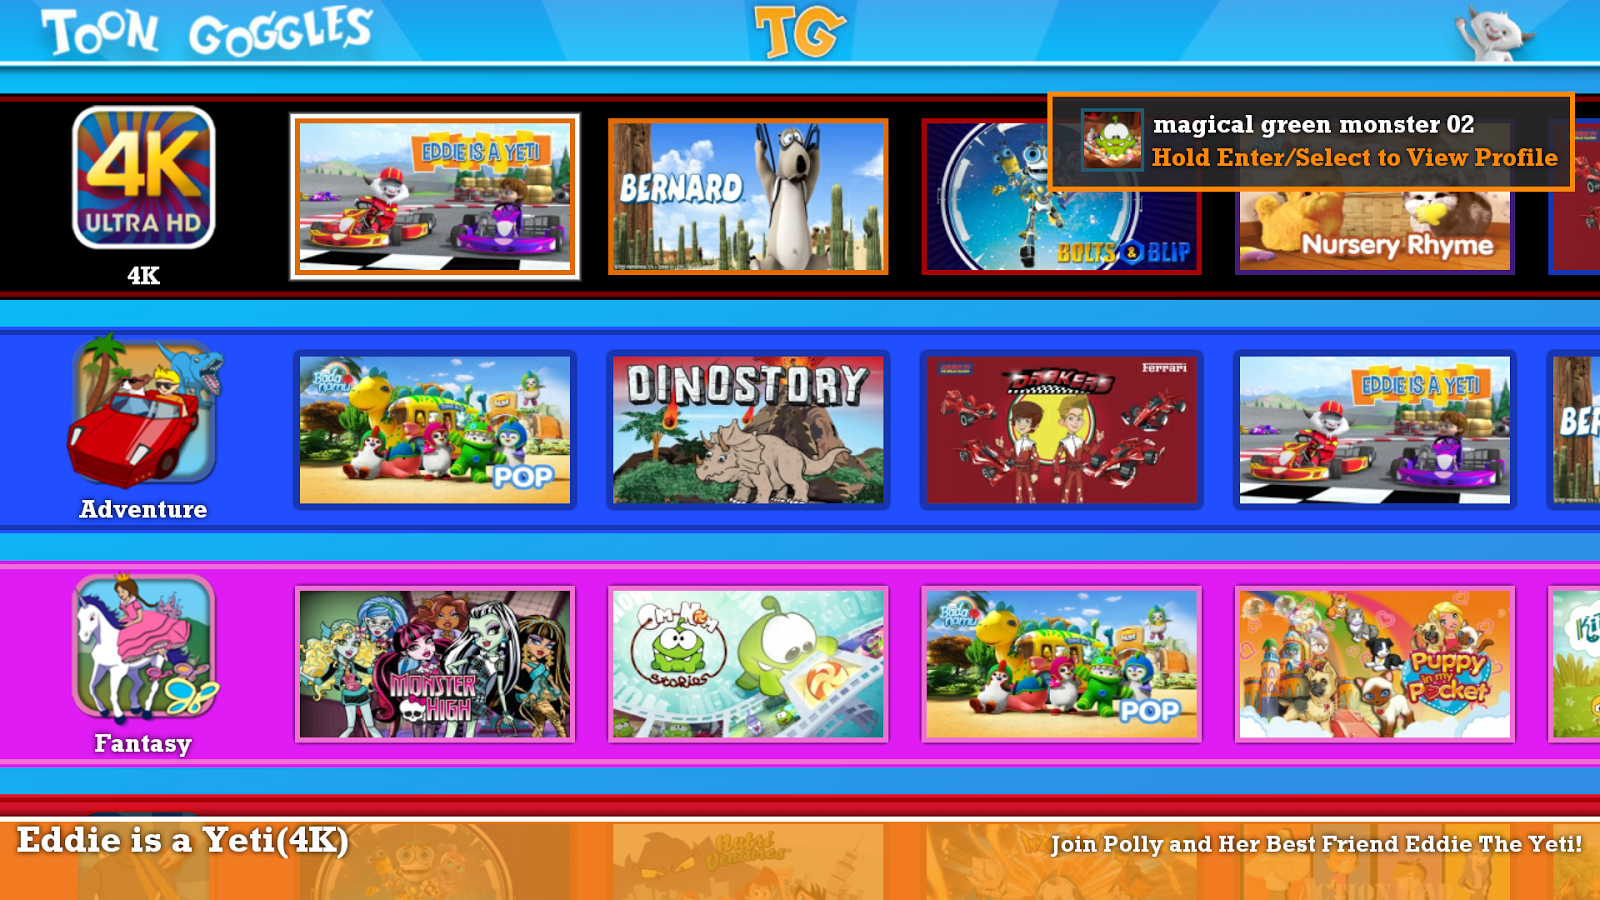 Toon Goggles for Android TV- screenshot